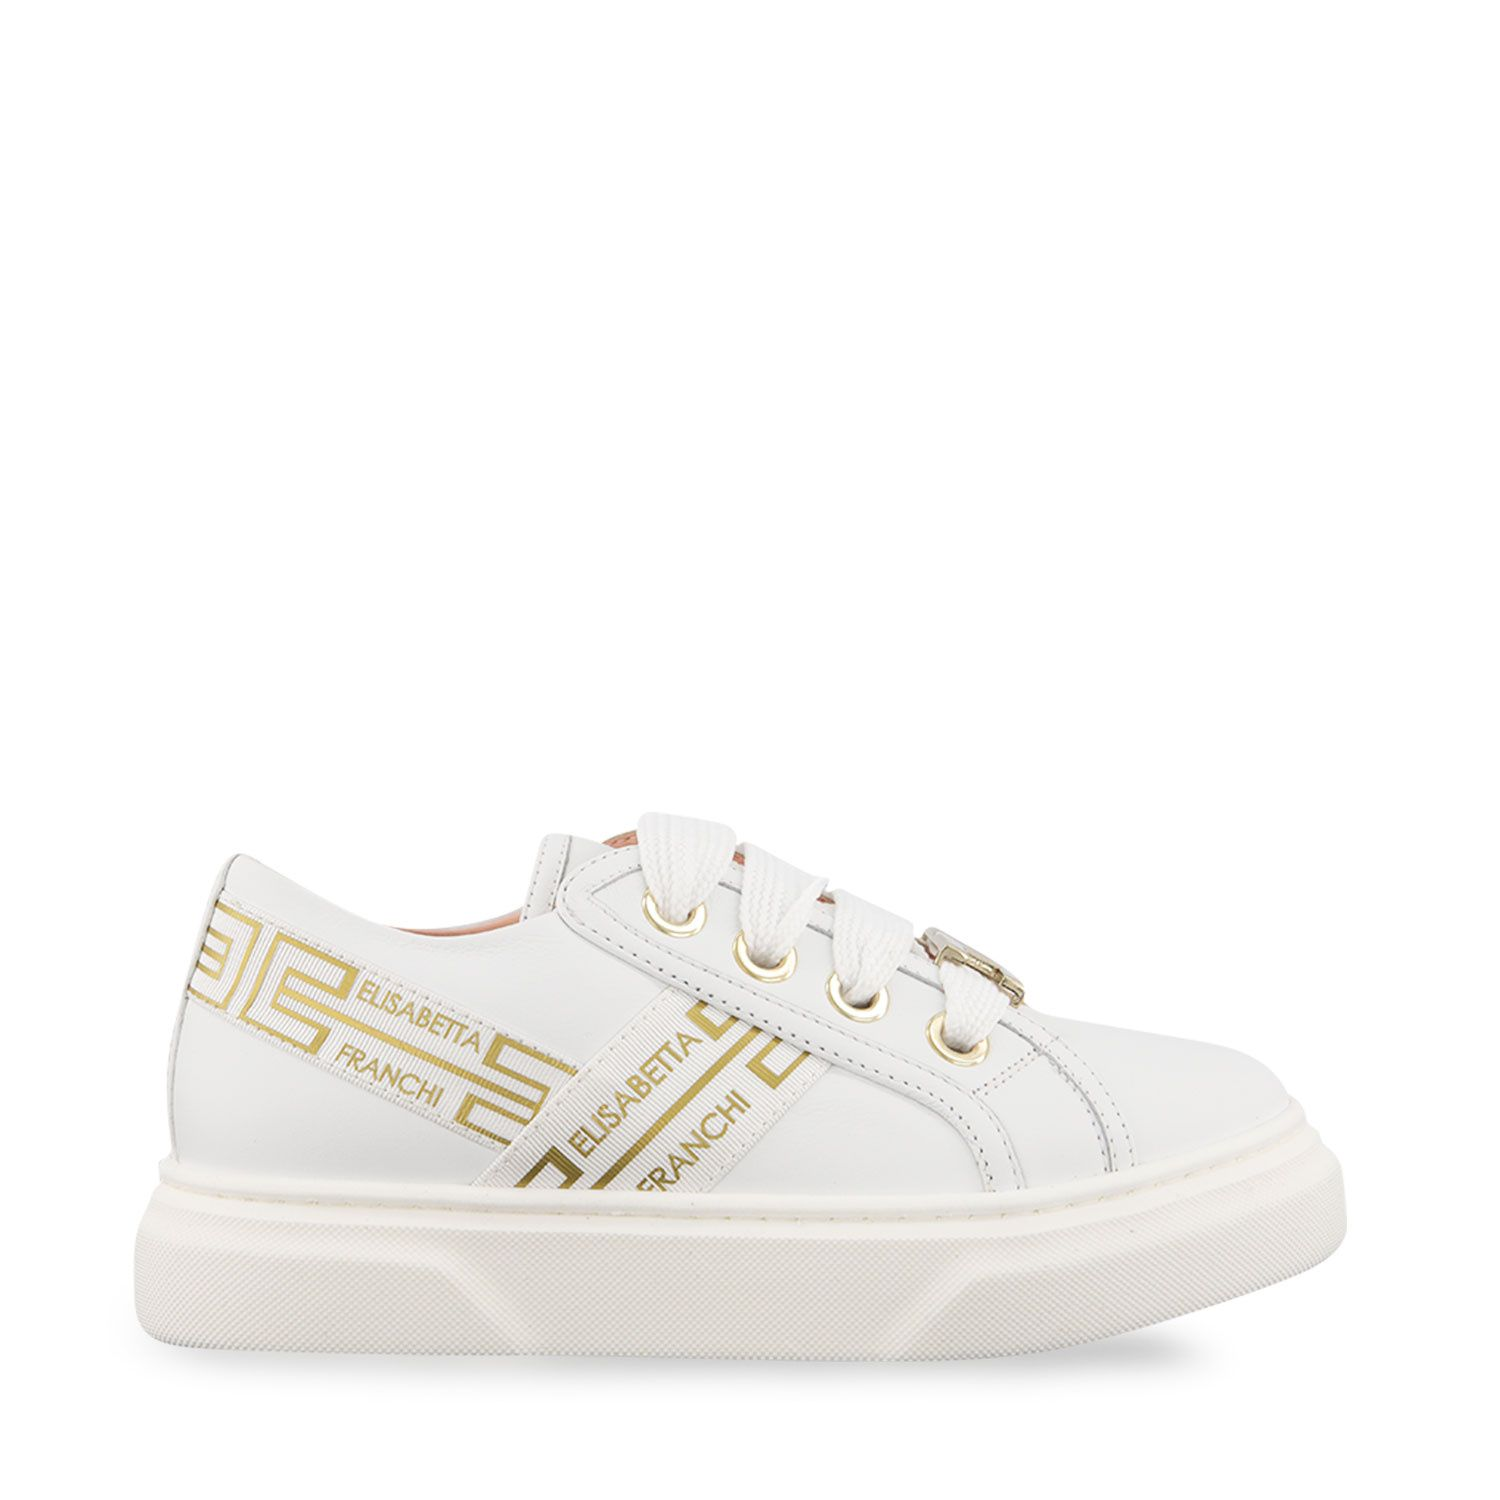 Picture of Elisabetta Franchi 68146 kids sneakers white